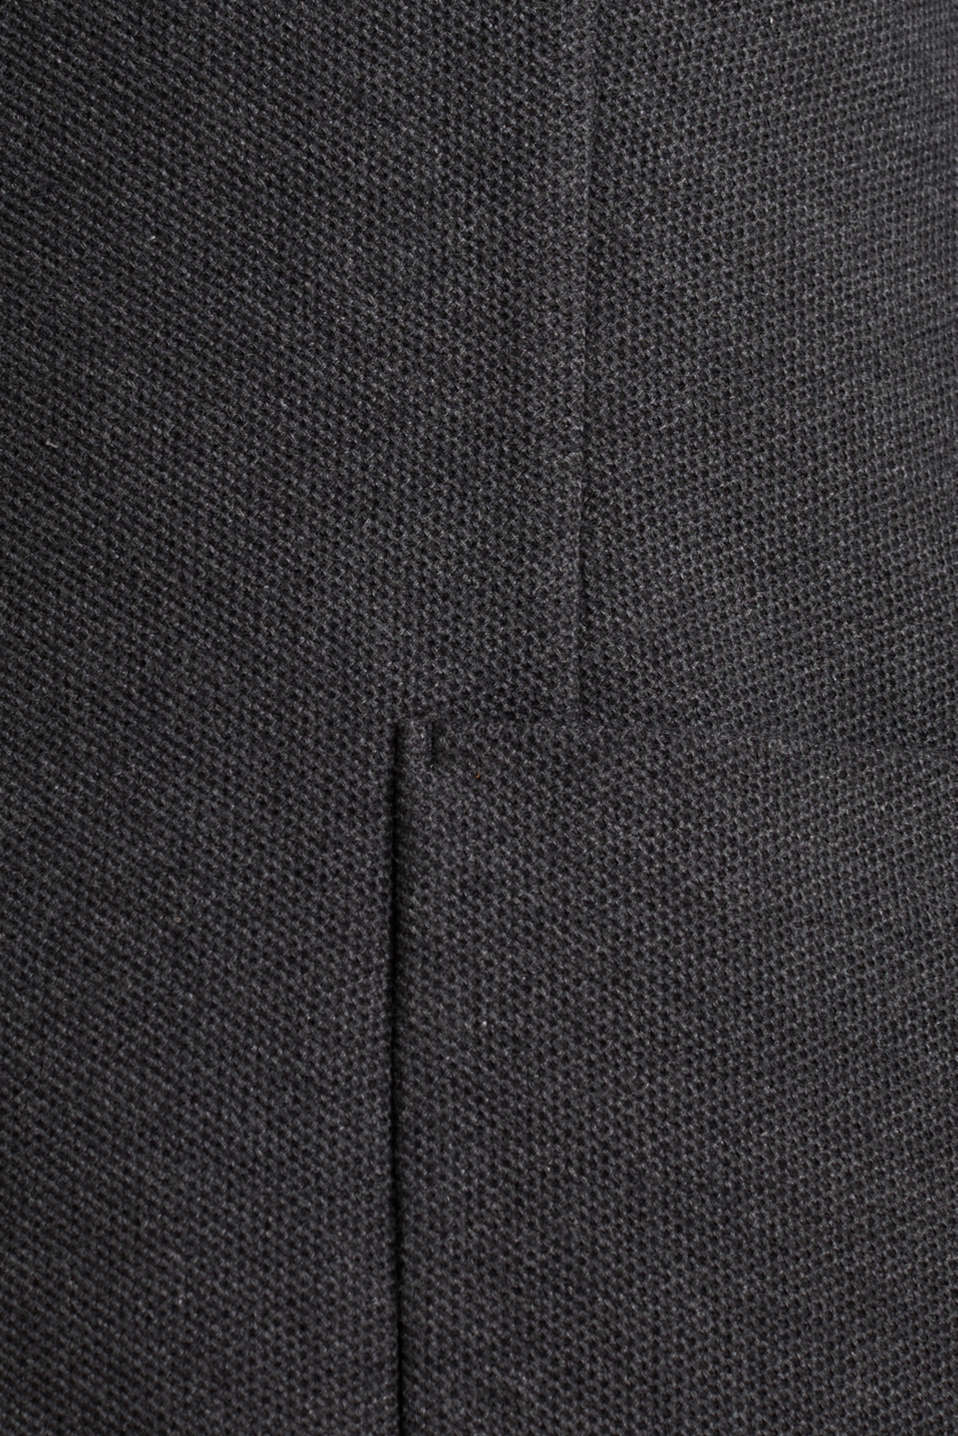 sports jacket made of 100% cotton, DARK GREY 5, detail image number 4